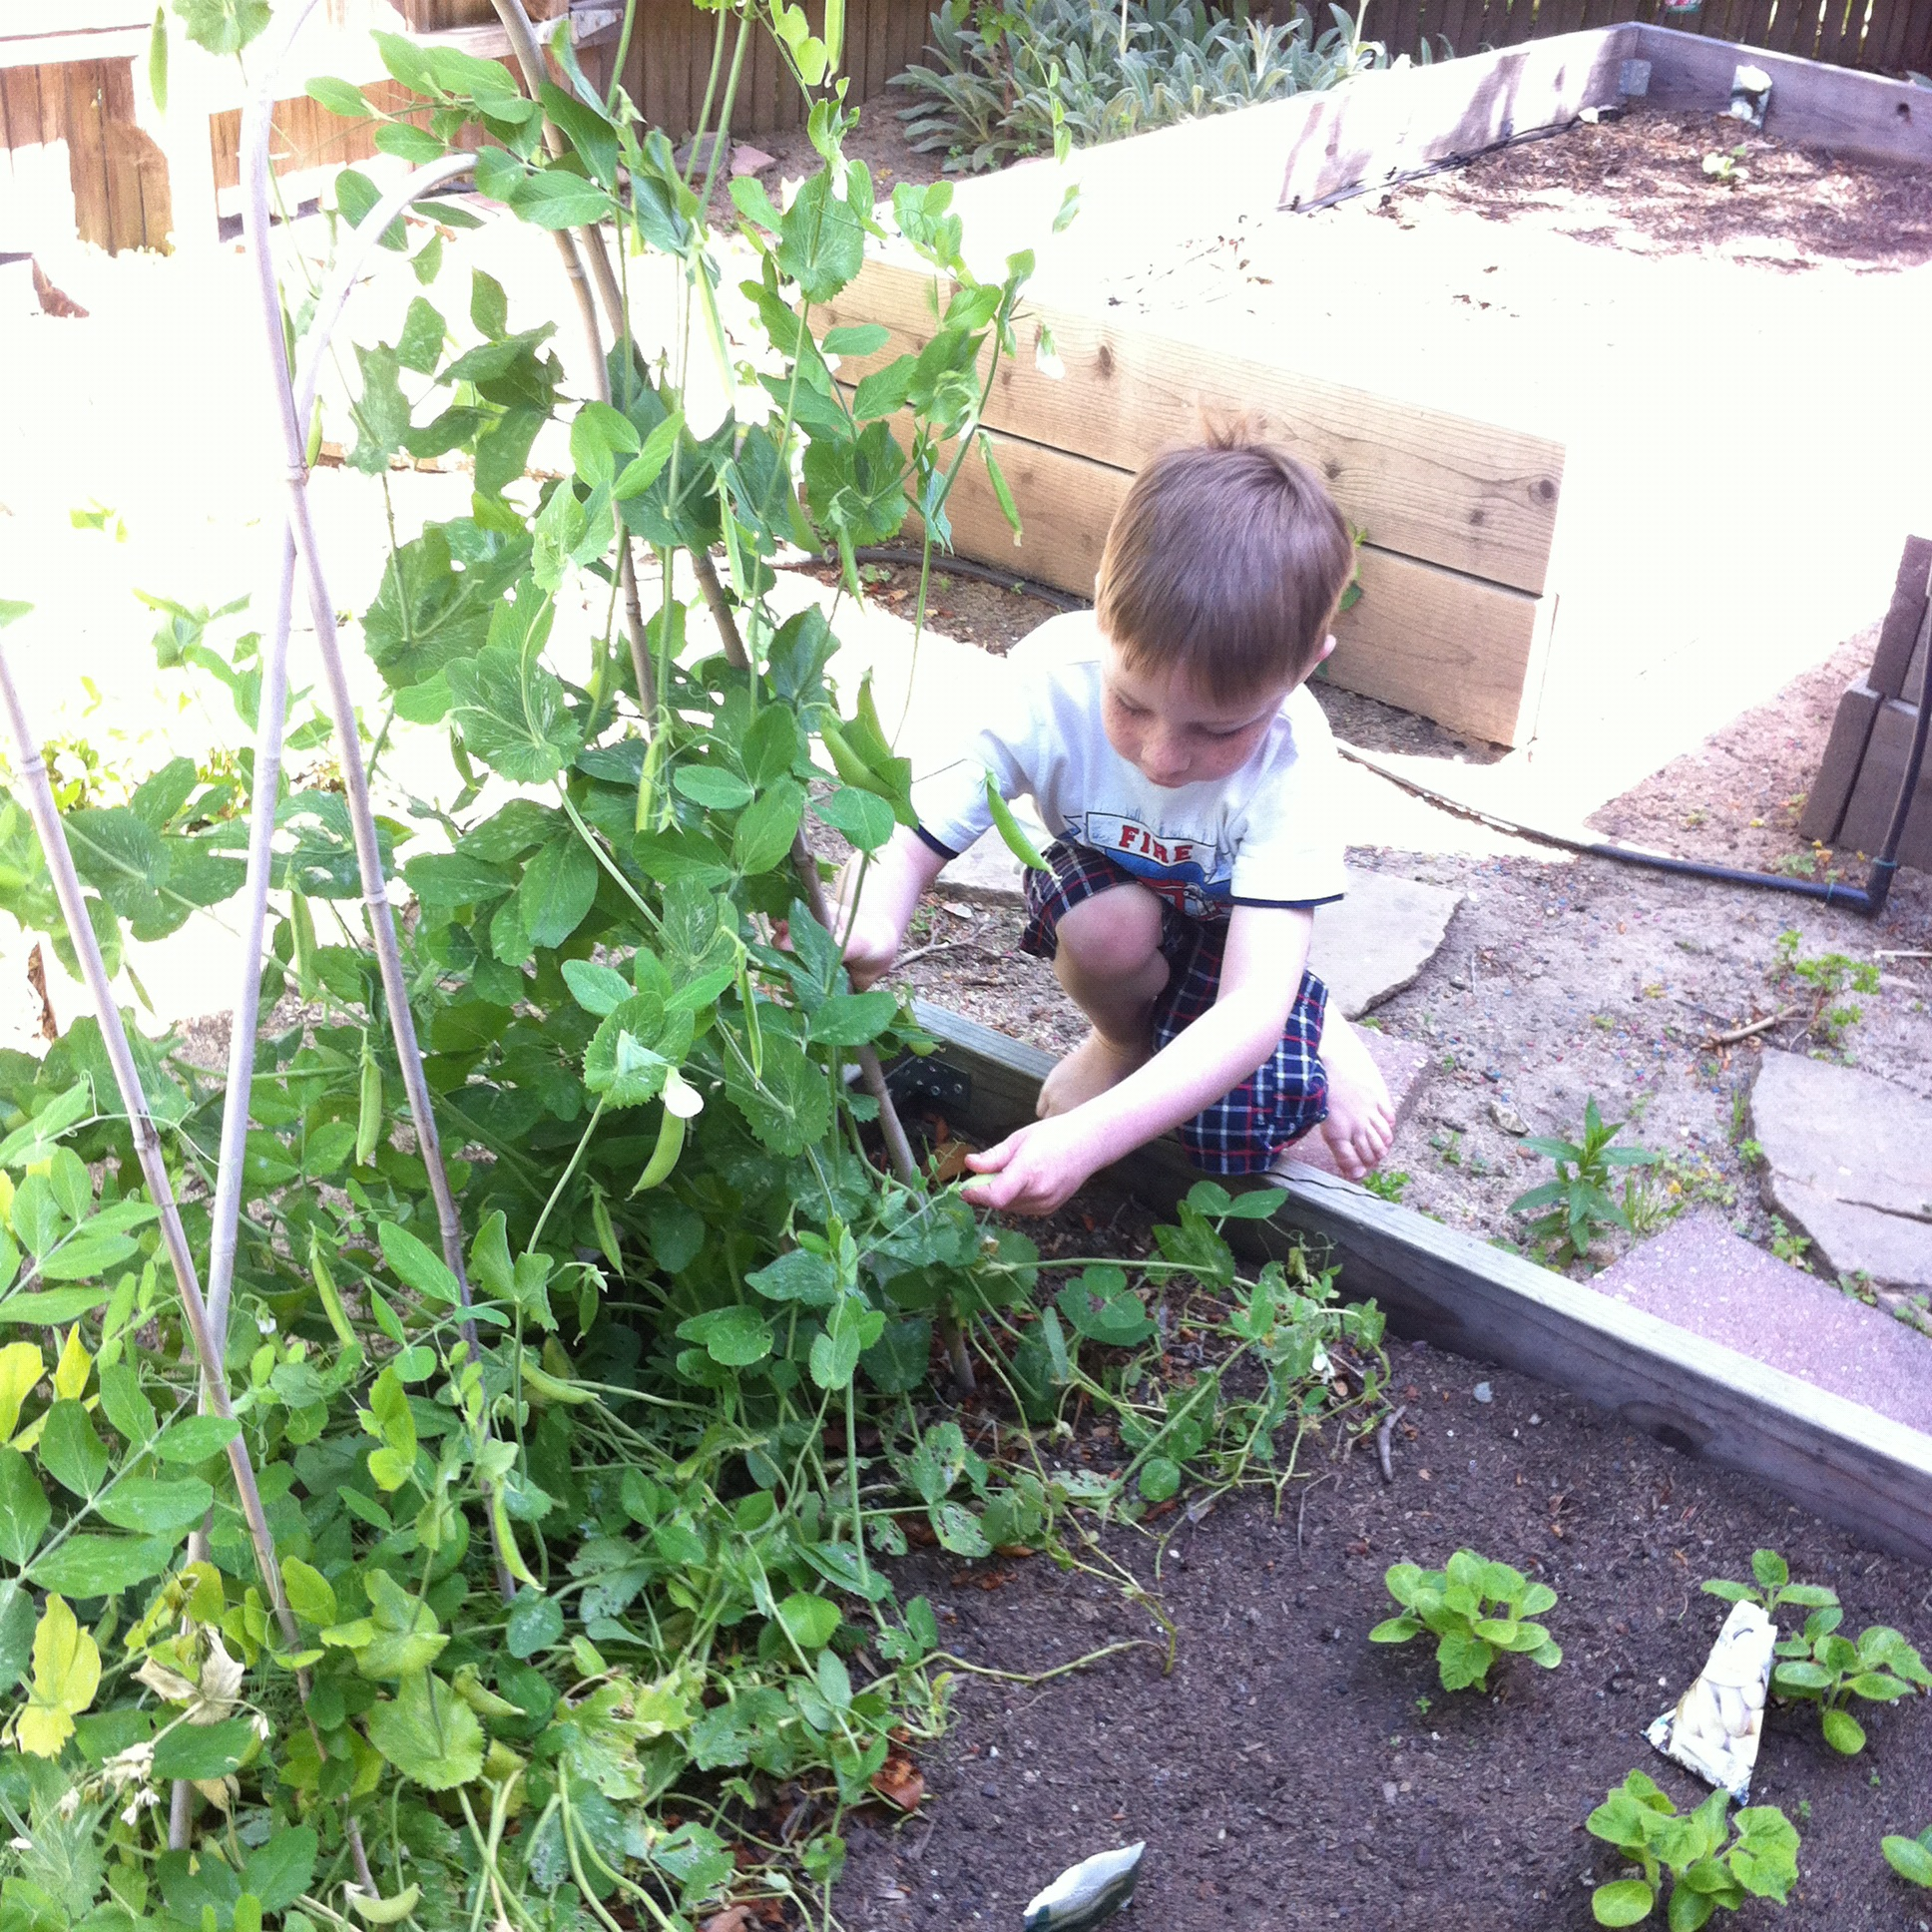 My son Aidan harvesting peas in our garden.